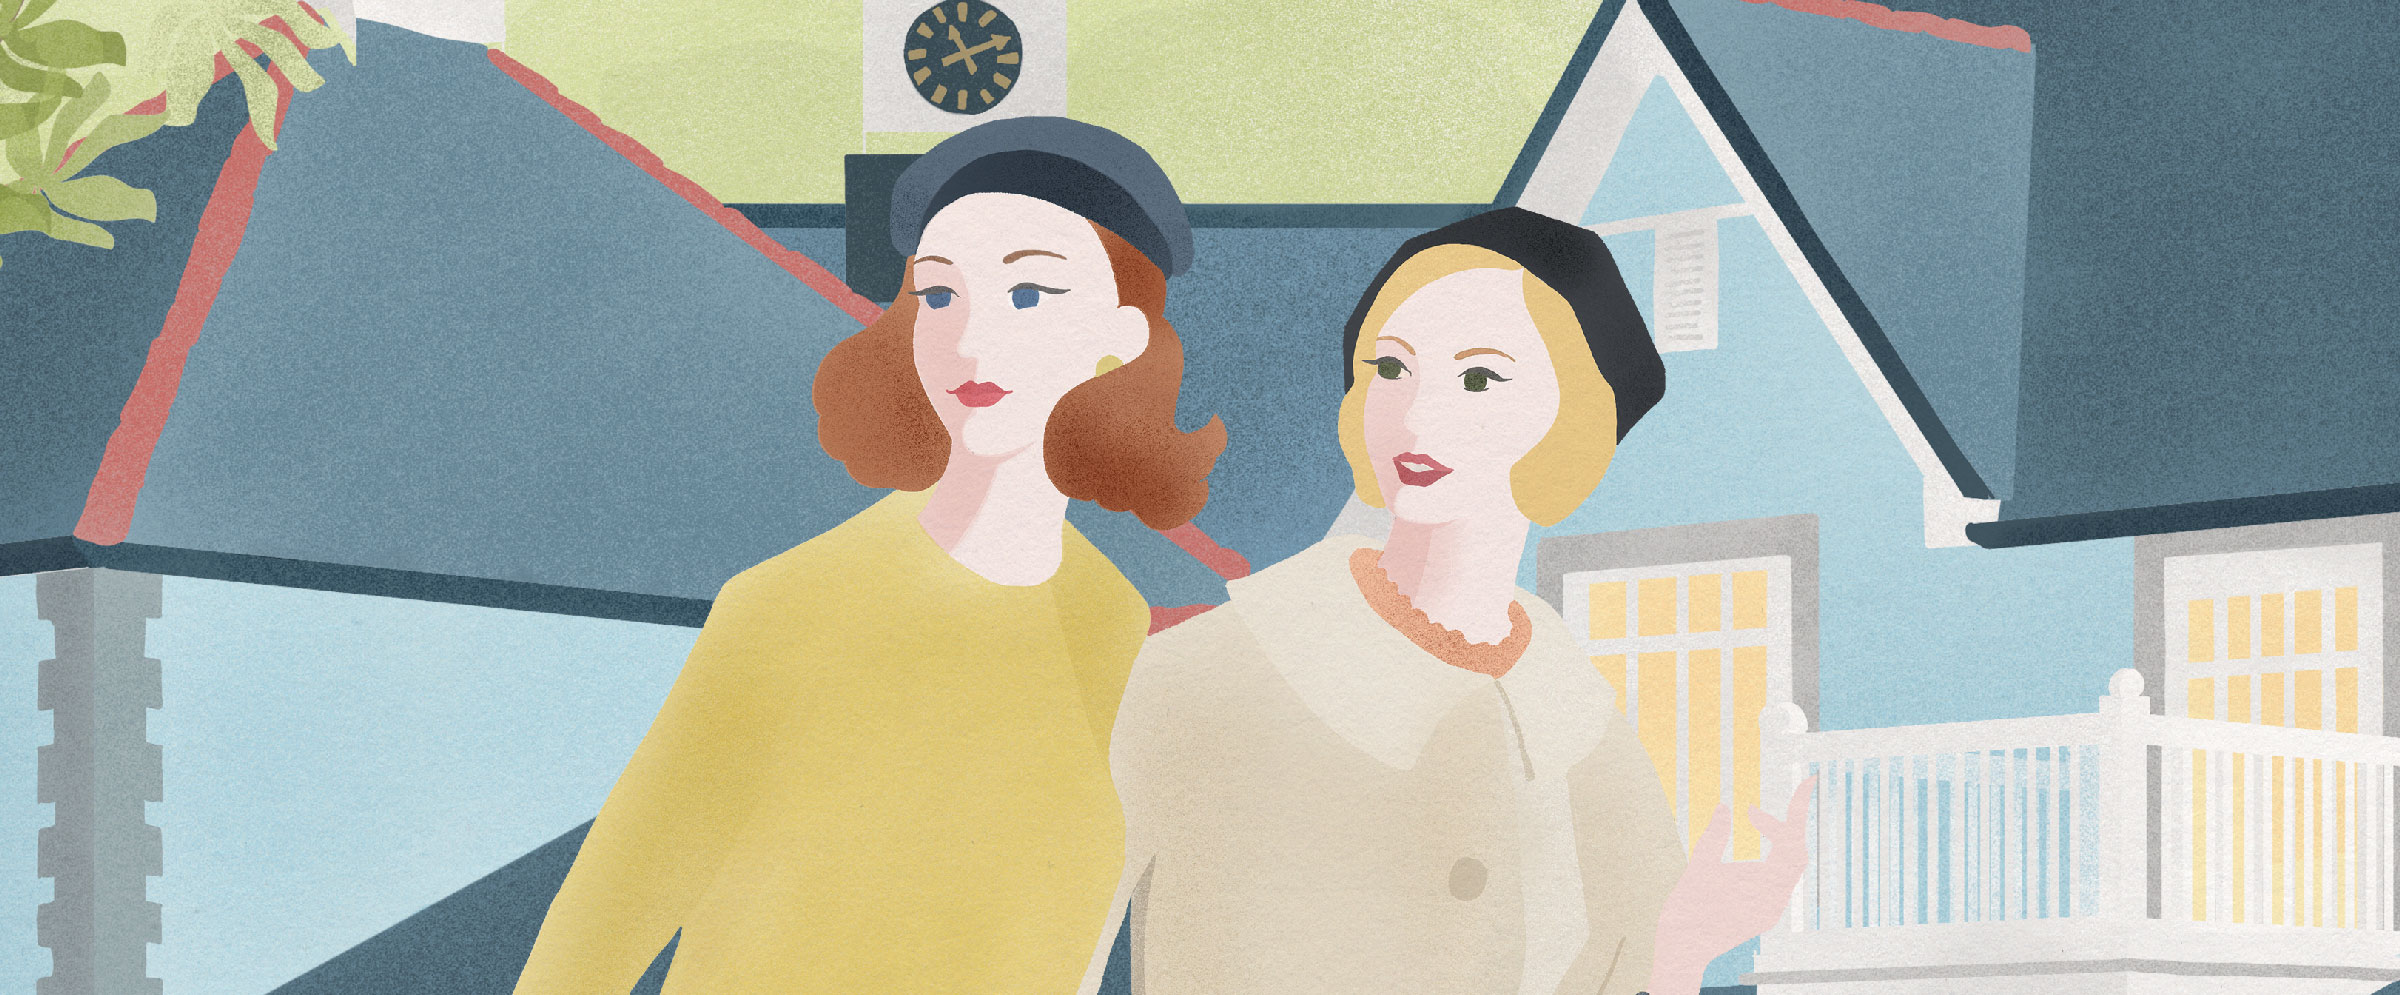 header KILDARE village 1 - VALUE RETAIL - THE TRAVEL POSTERS